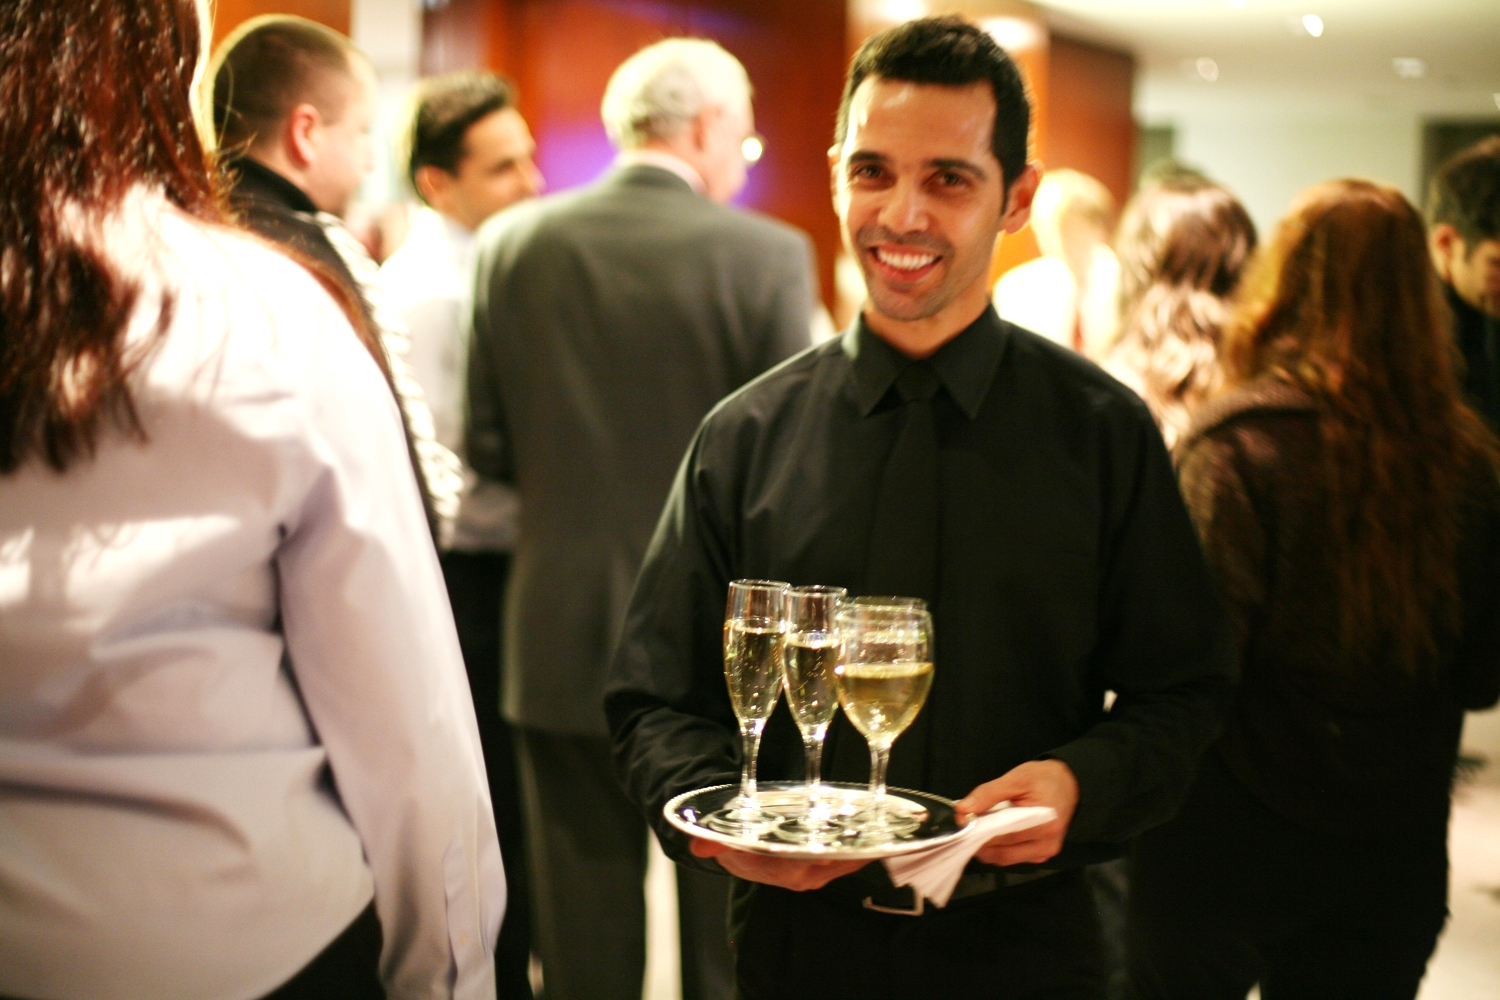 Ray with champagne tray.Fid. Dec. 19th.JPG